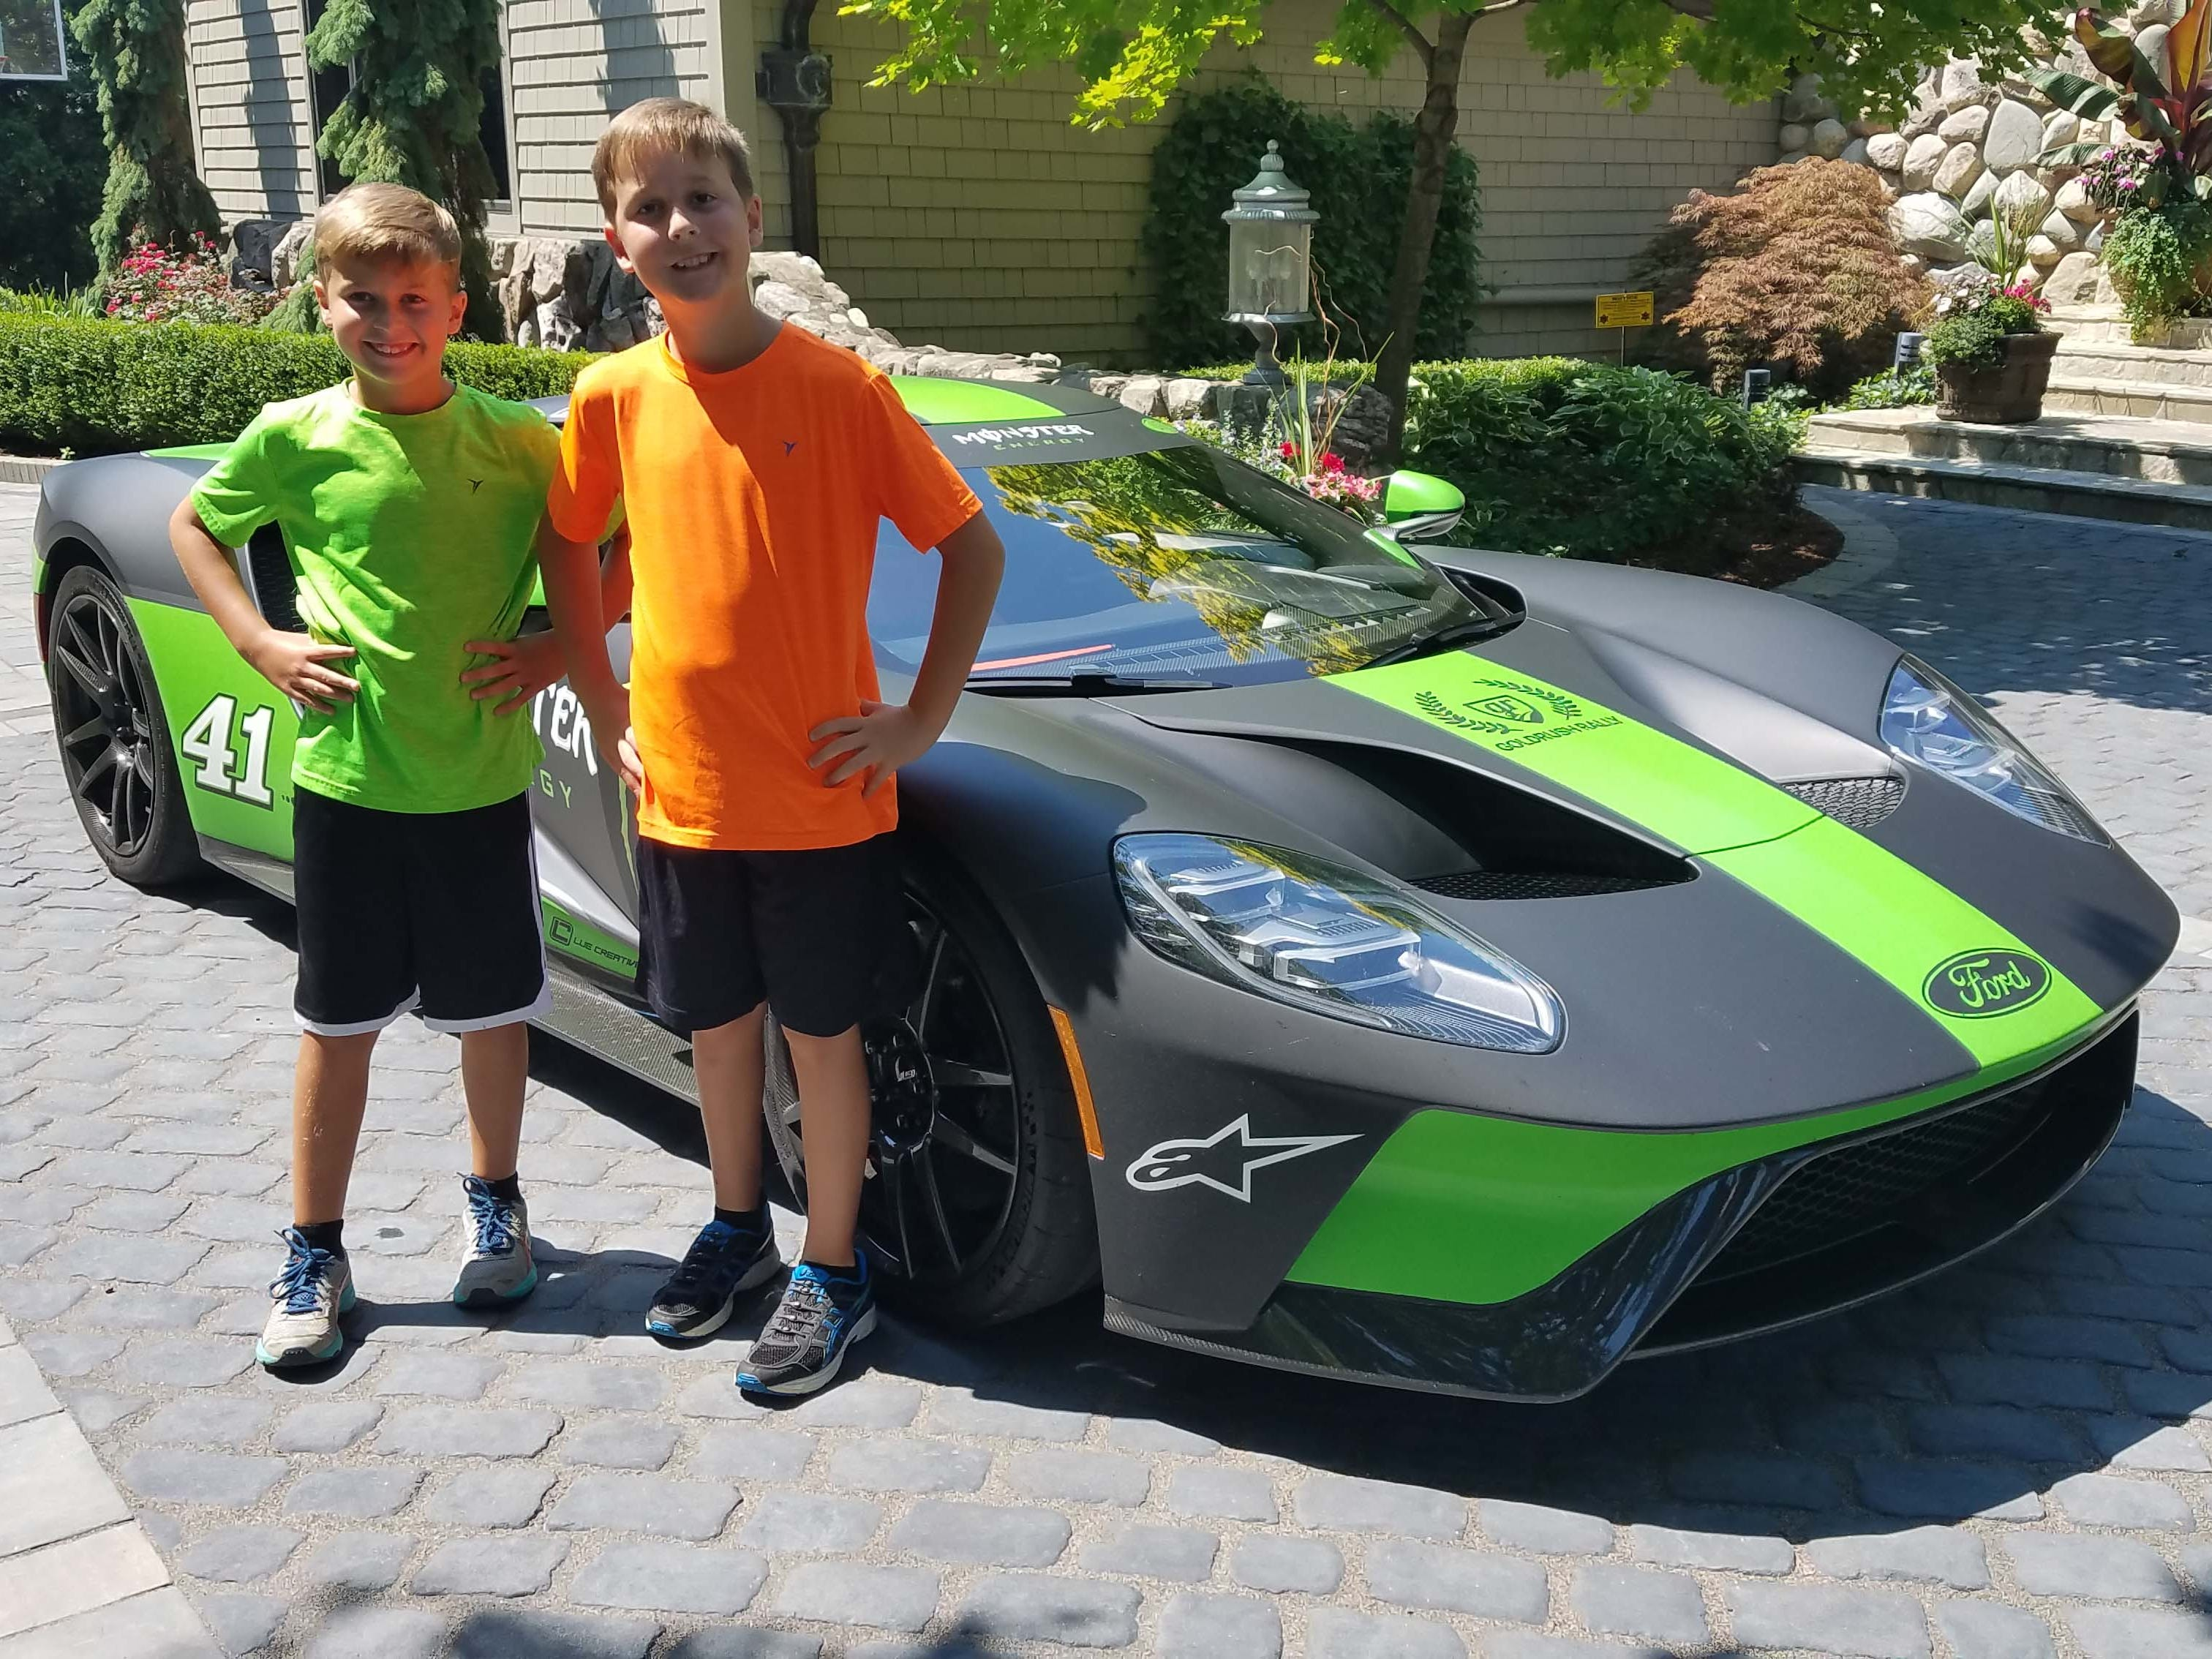 It's all about the kids. Kurt Busch's Ford GT thrills some neighborhood kids - and left them begging for more after Detroit News auto critic Henry Payne gave them a quick spin (courtesy of the NASCAR star).